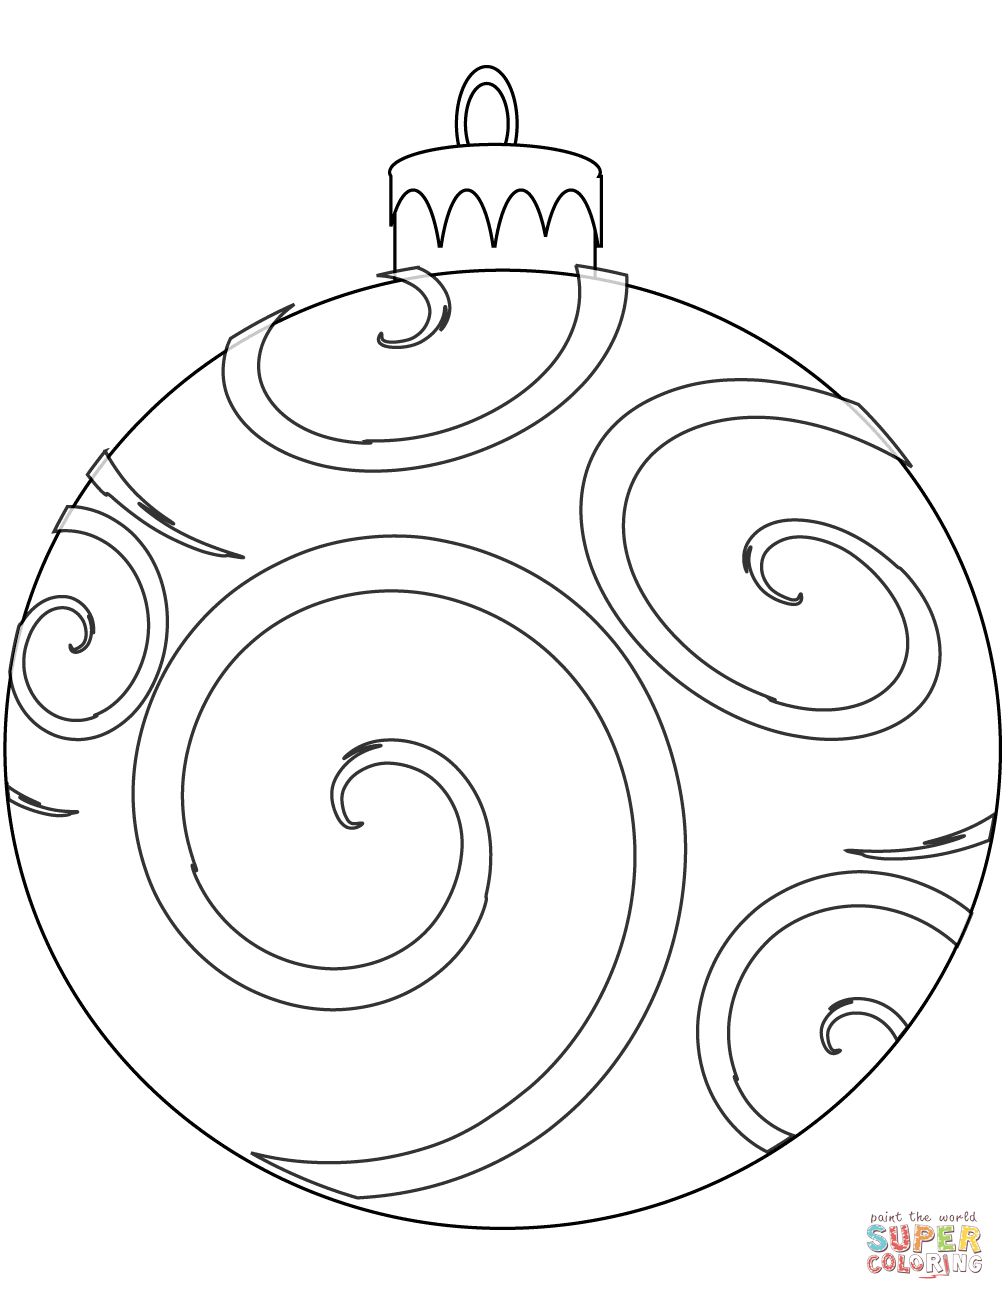 Holiday Ornament Coloring Page | Free Printable Coloring Pages - Free Printable Christmas Ornament Coloring Pages